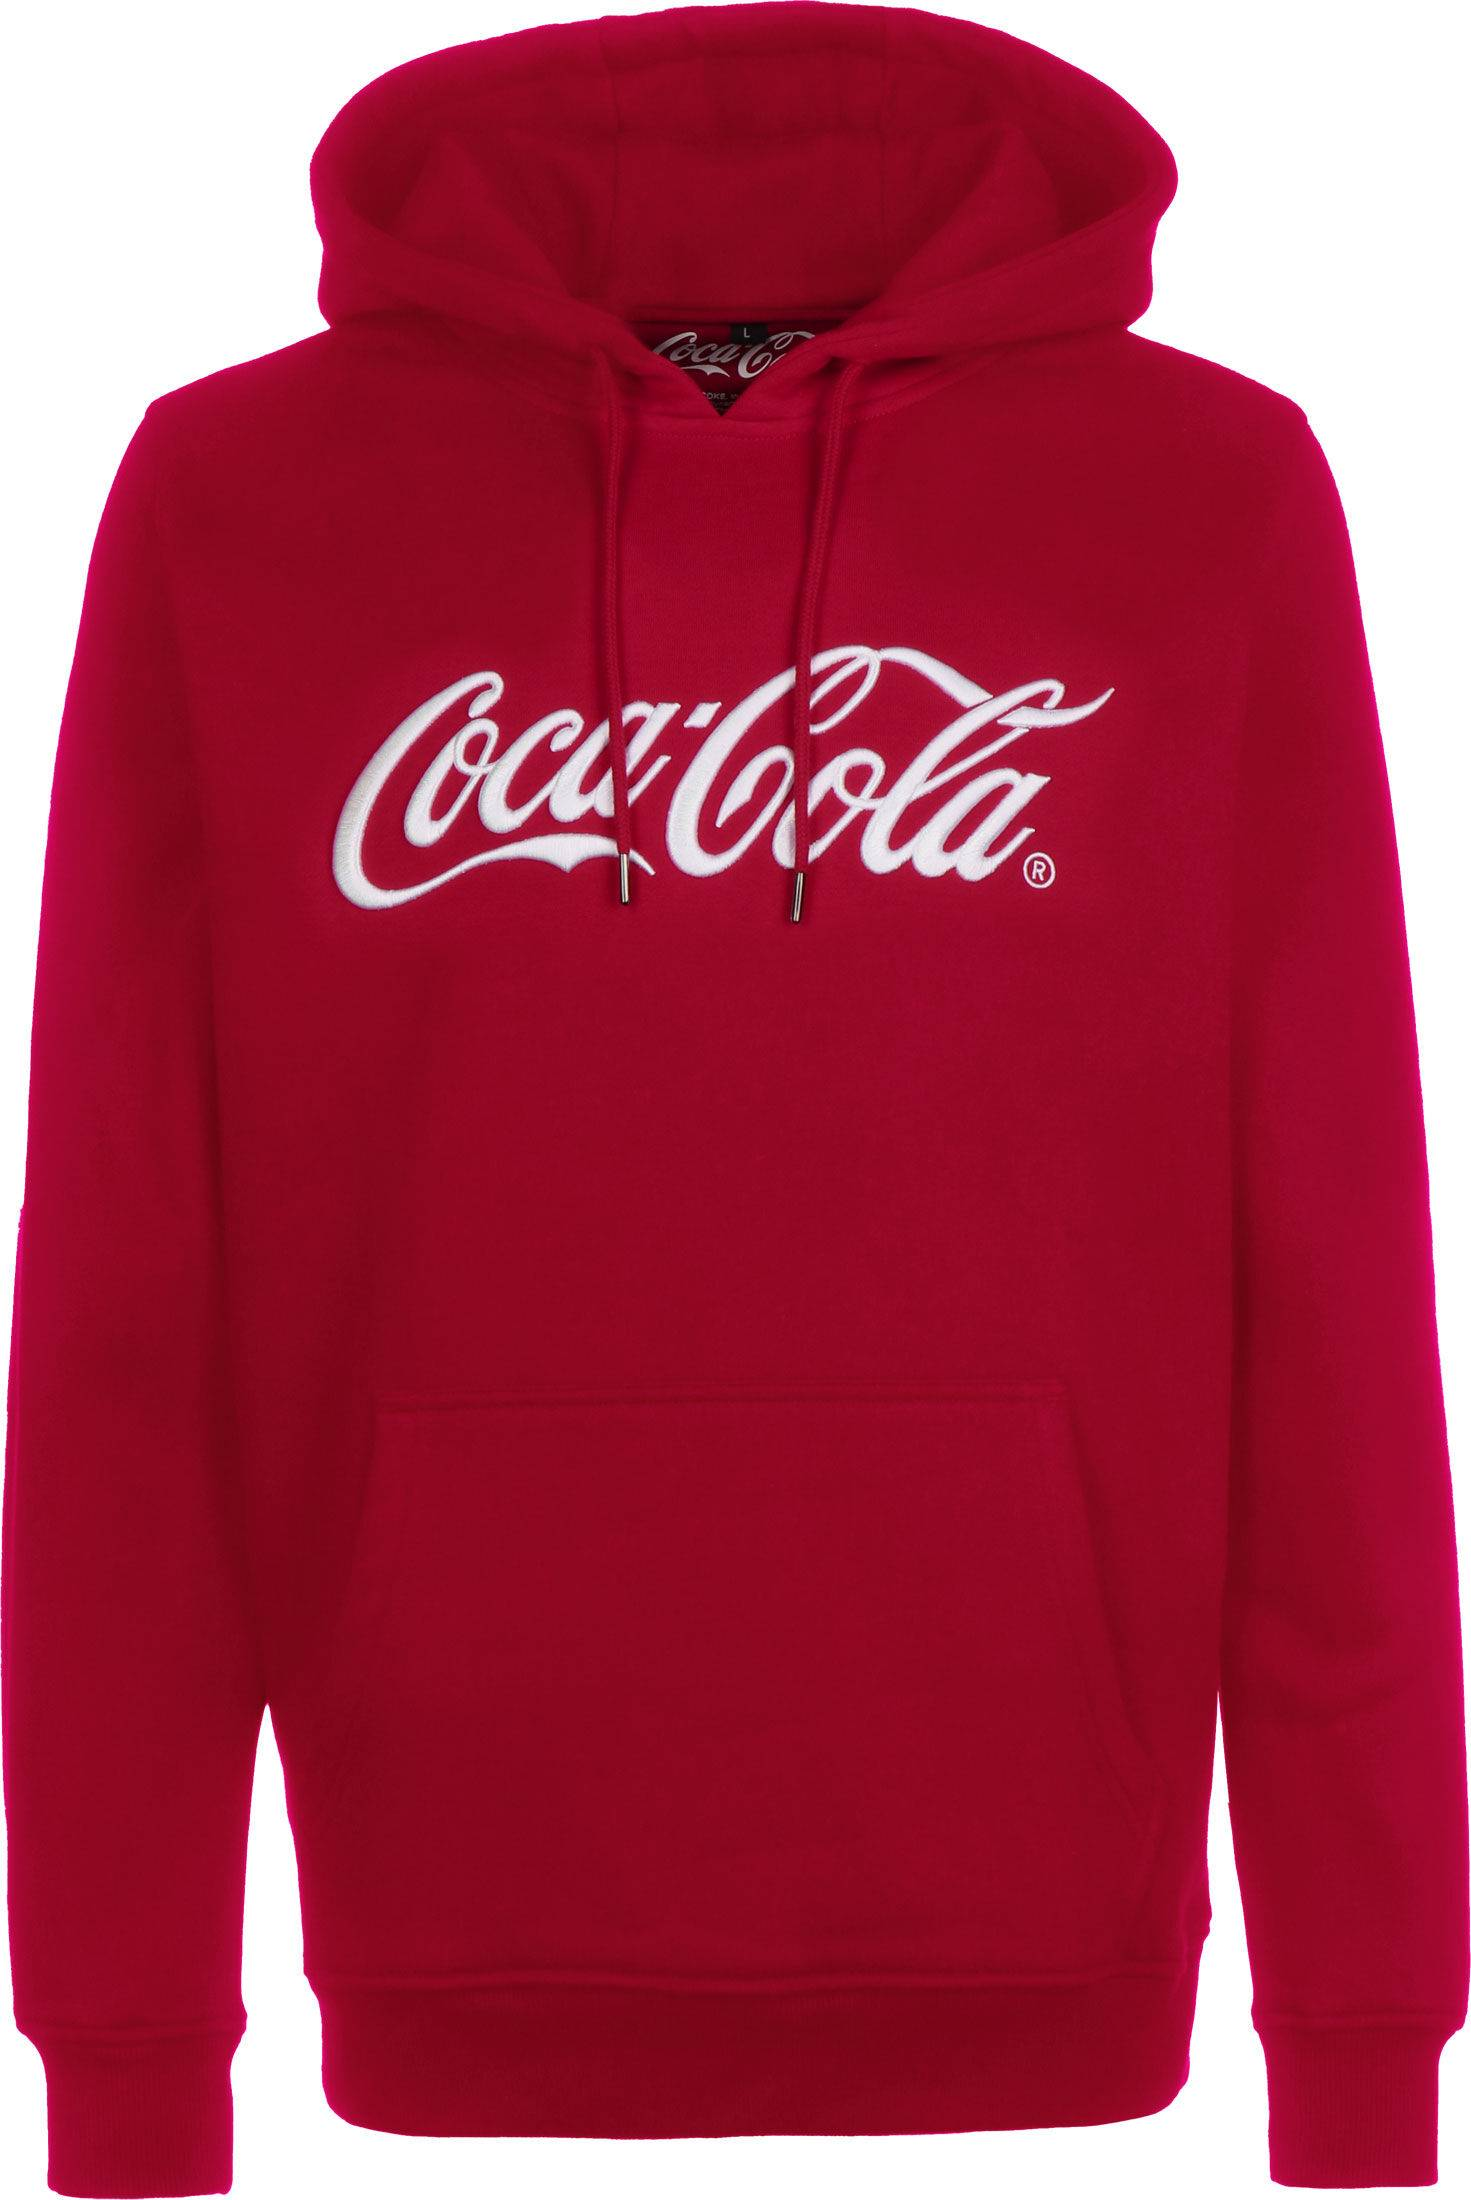 Merchcode Coca Cola Classic, taille S, homme, rouge